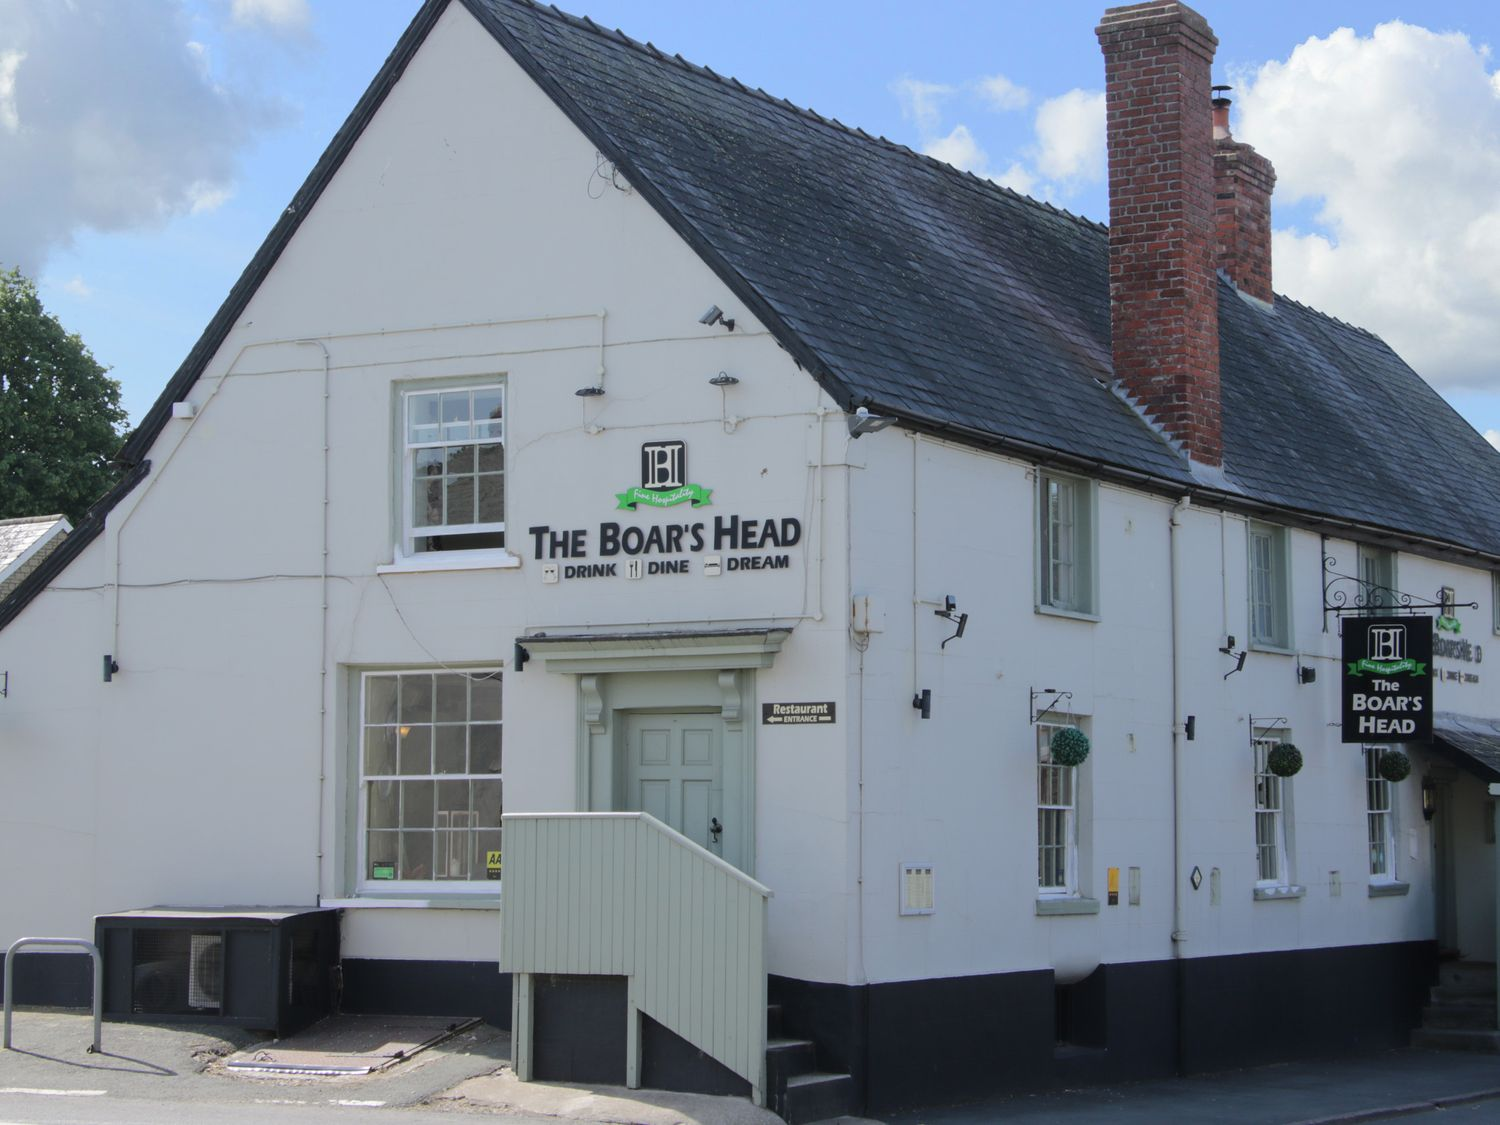 The Boar's Head is split into the pub and the bedrooms